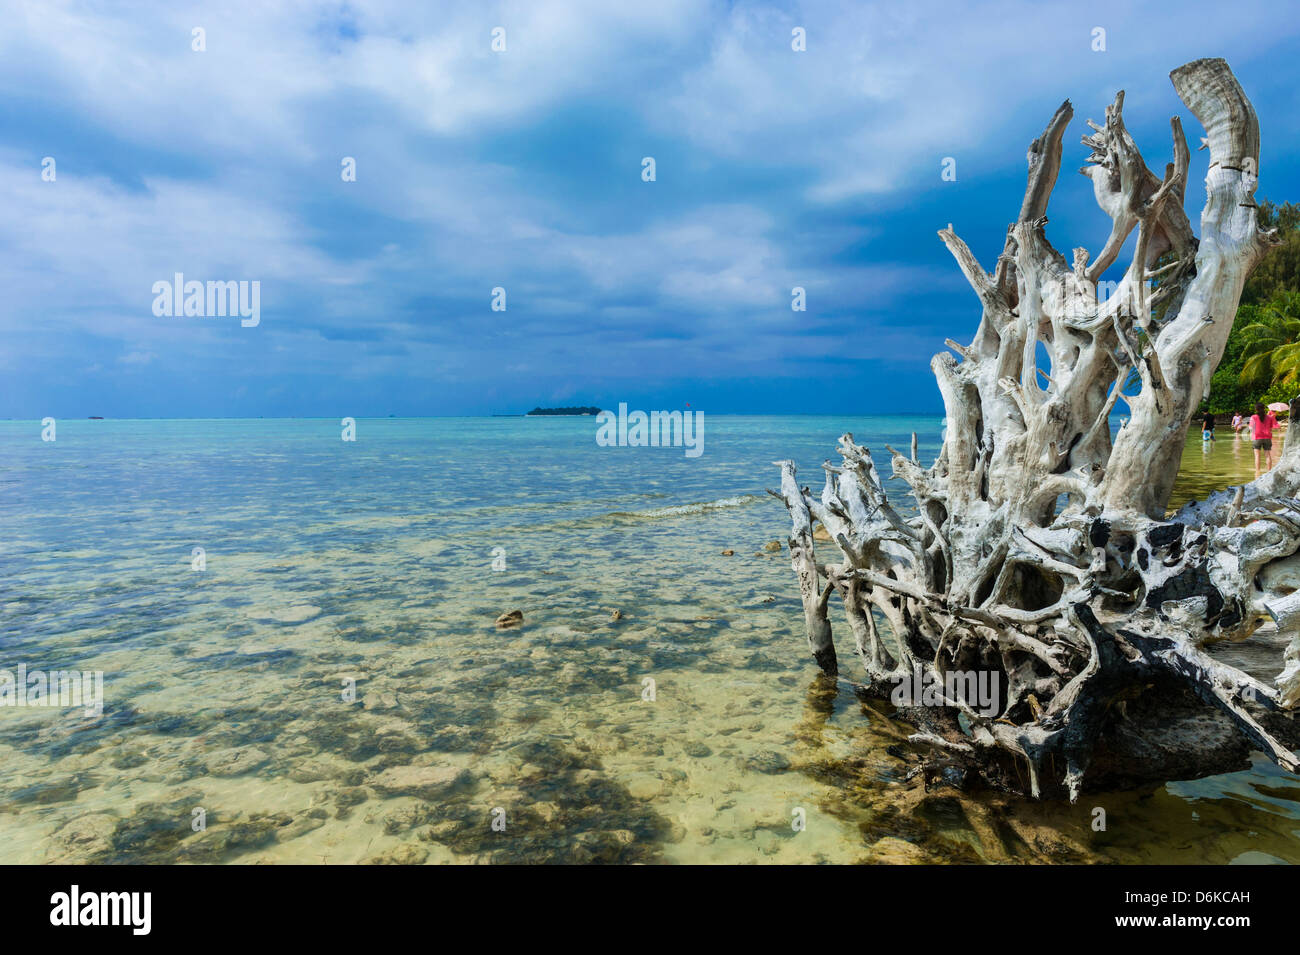 Dead tree at Micro beach in Garapan, Saipan, Northern Marianas, Central Pacific, Pacific - Stock Image